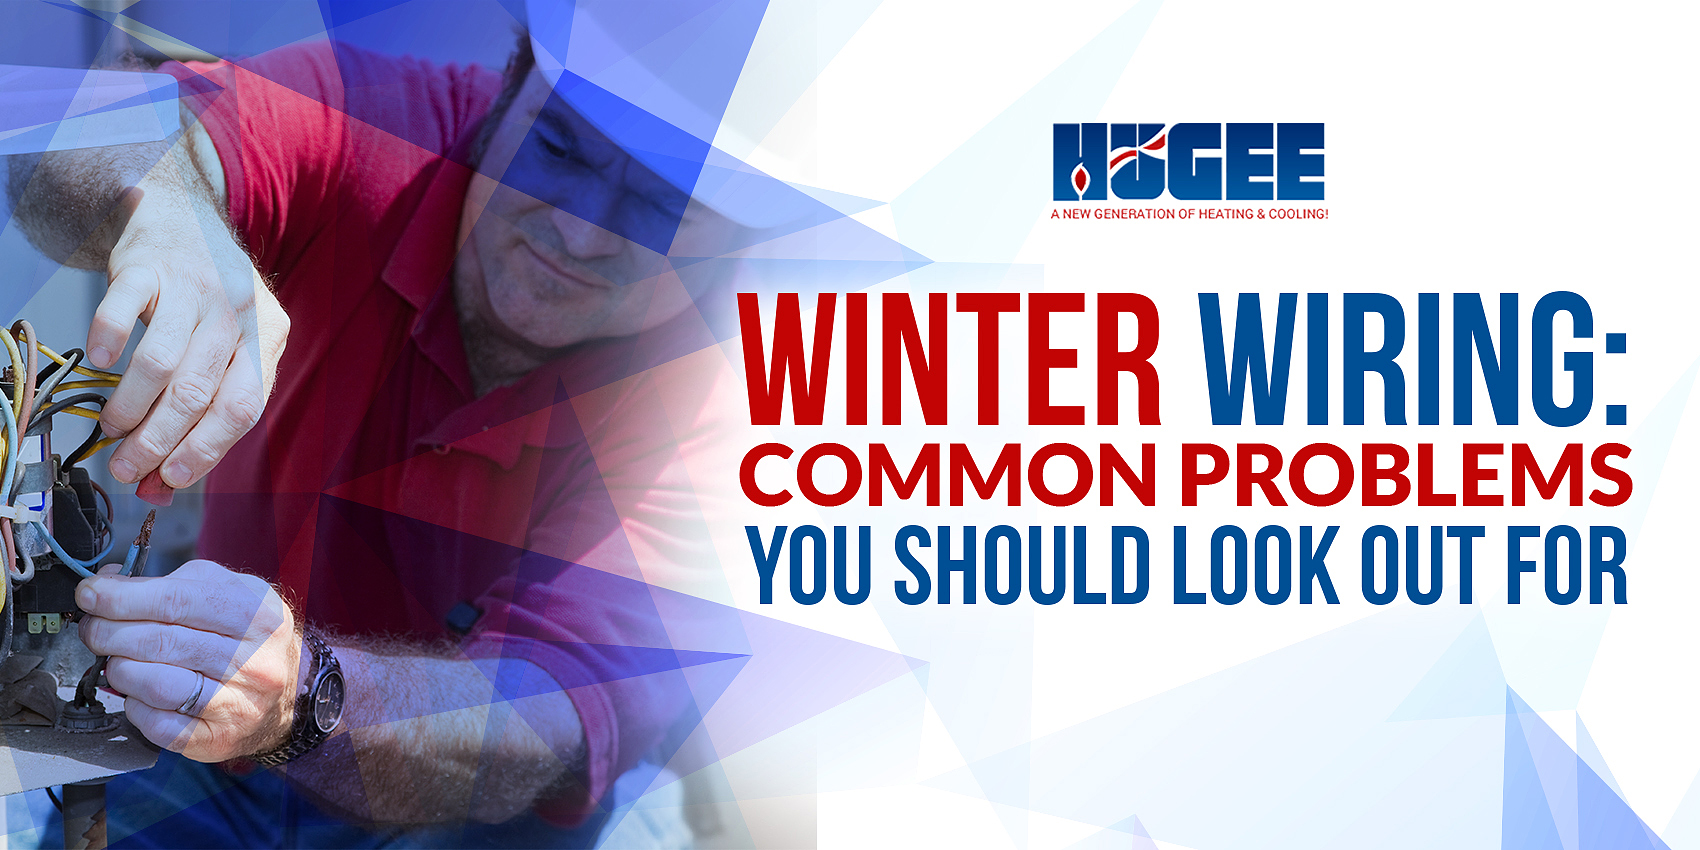 Winter Wiring: Common Problems You Should Look Out for